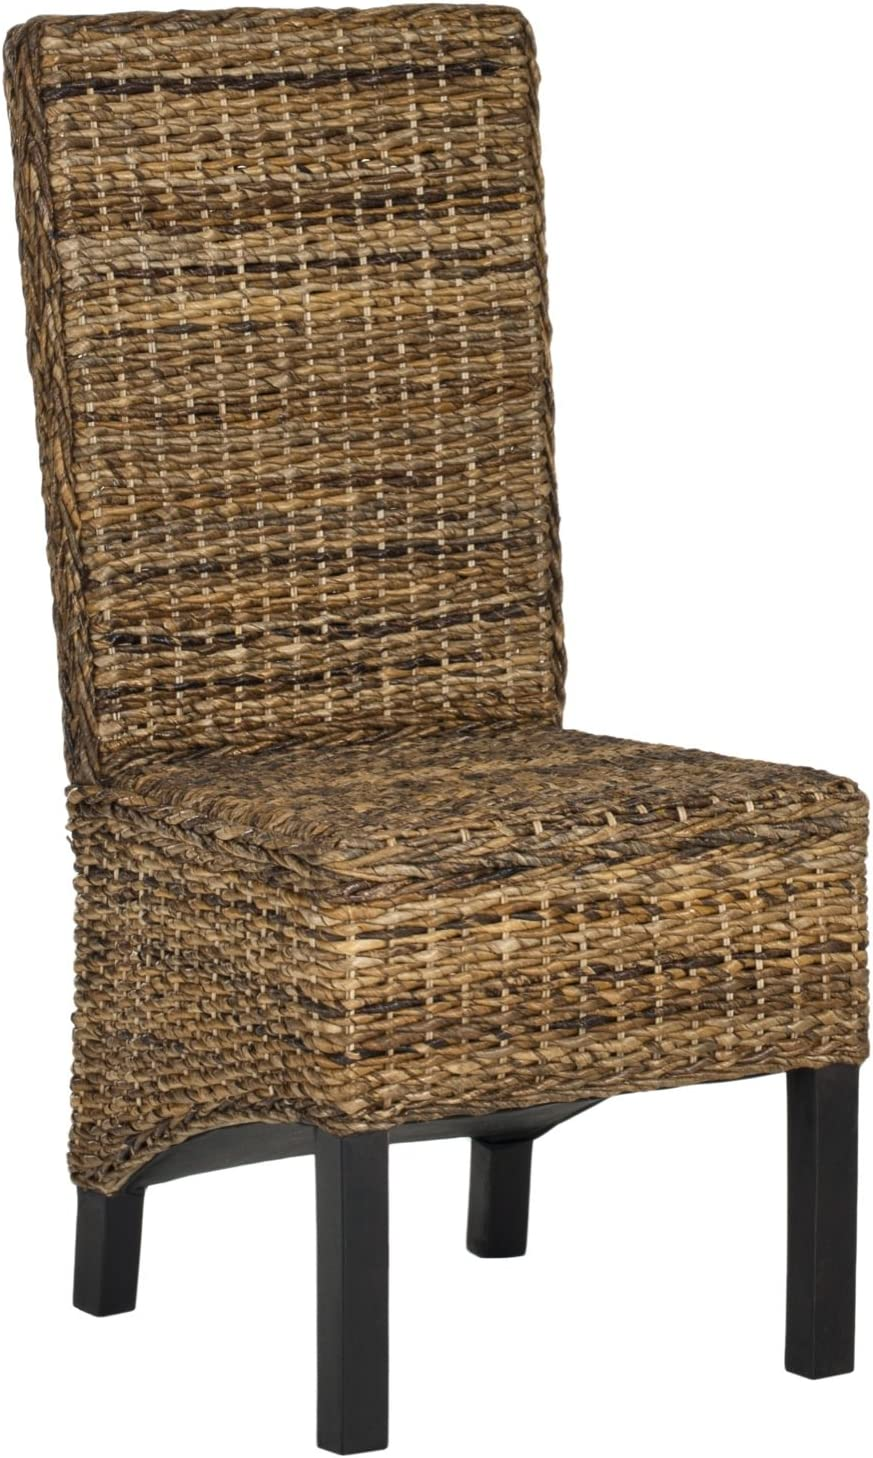 Safavieh Home Collection Pembrooke Natural Dining Chair Set of 2